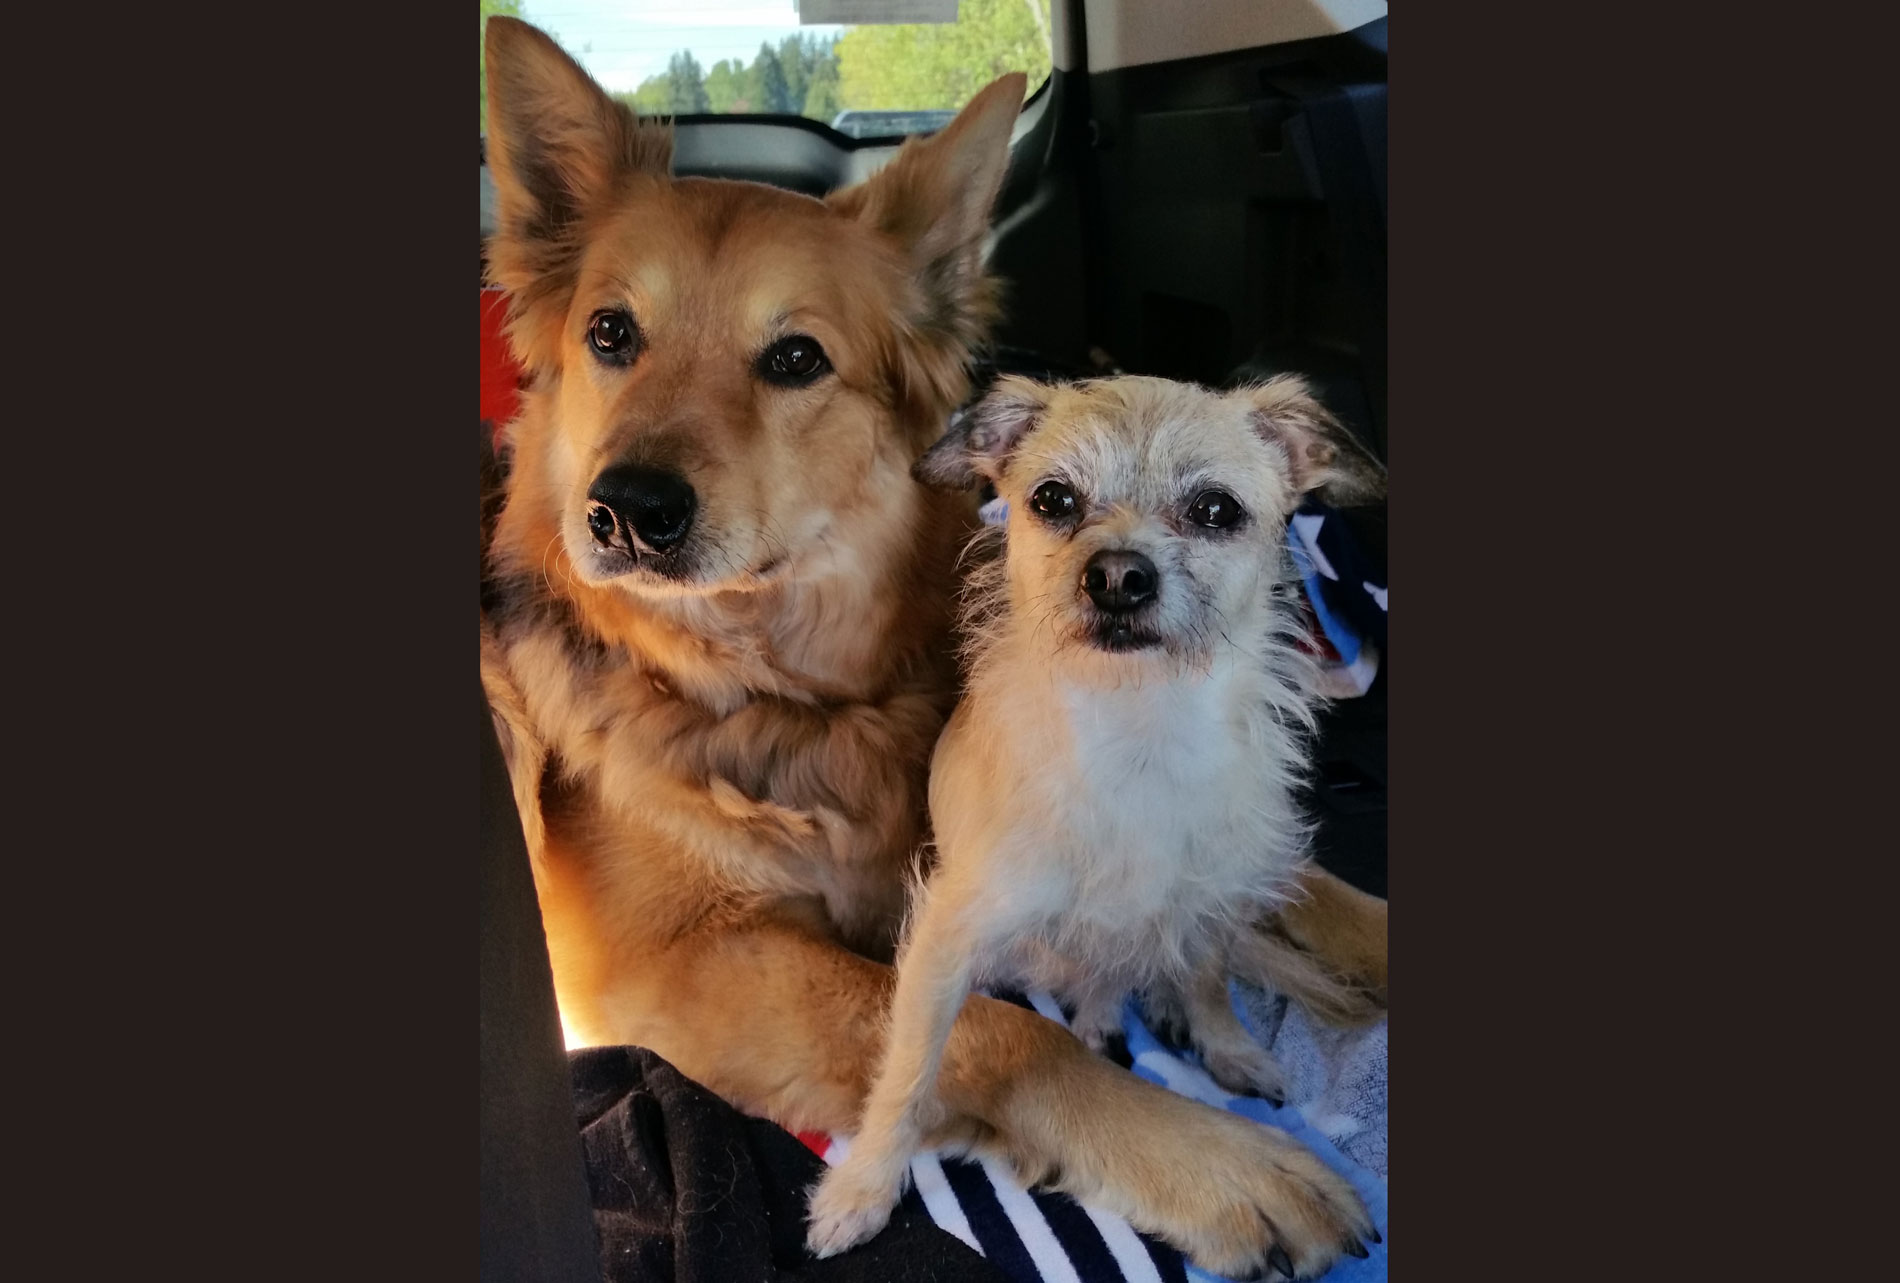 Sakari & Chloe have arthritis in dogs but it doesn't slow them down thanks to Glyde!